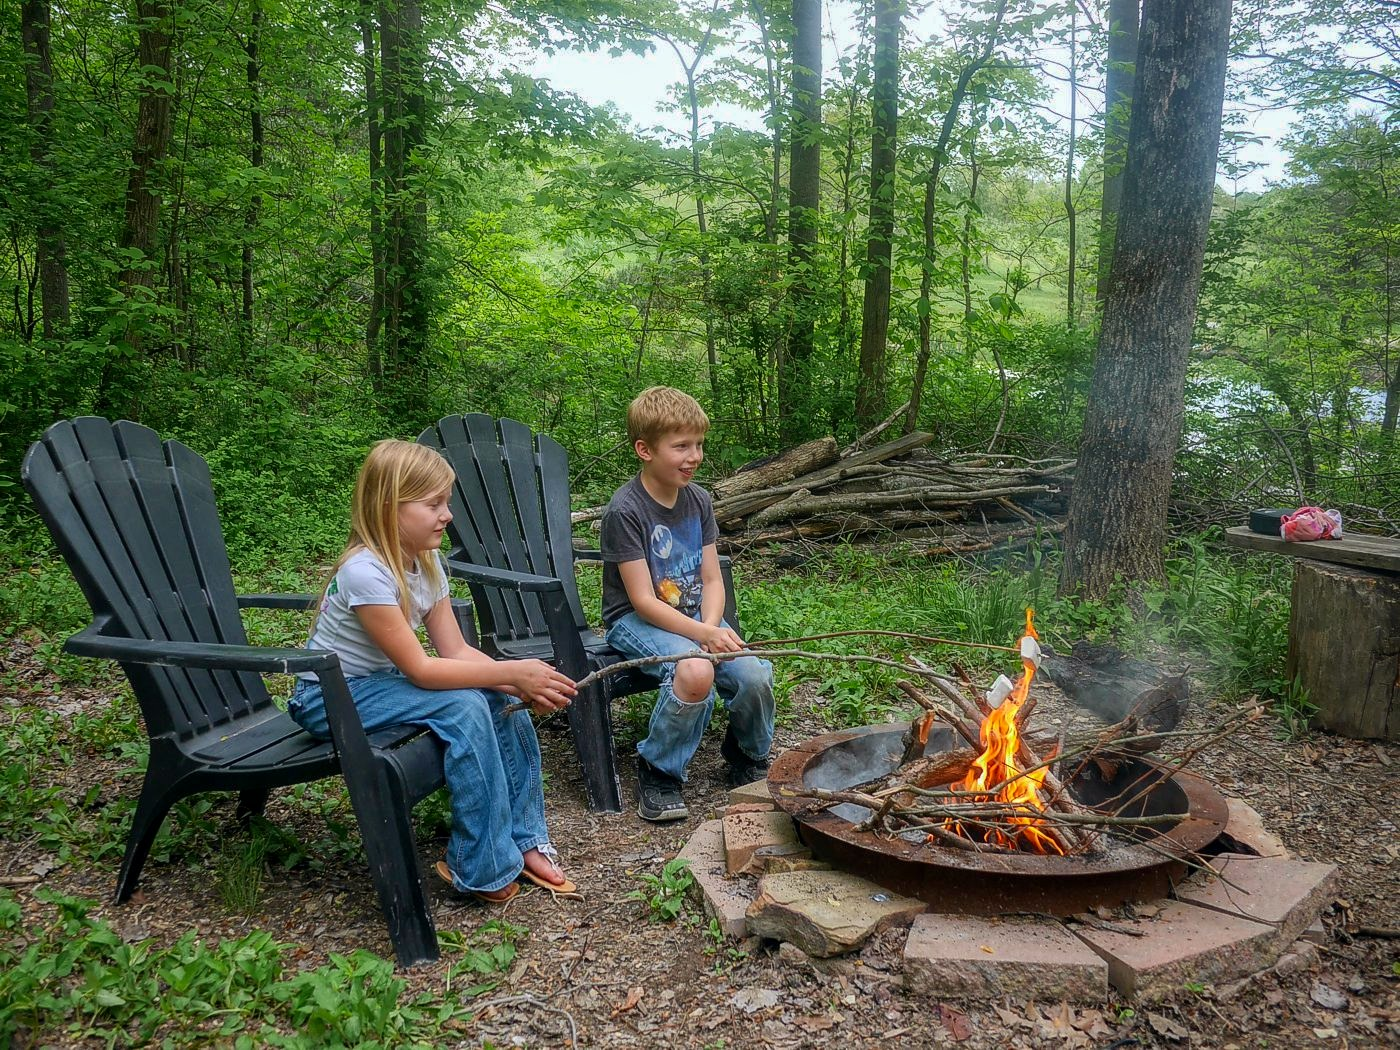 Four Seasons Cabin Rentals in the Hocking Hills